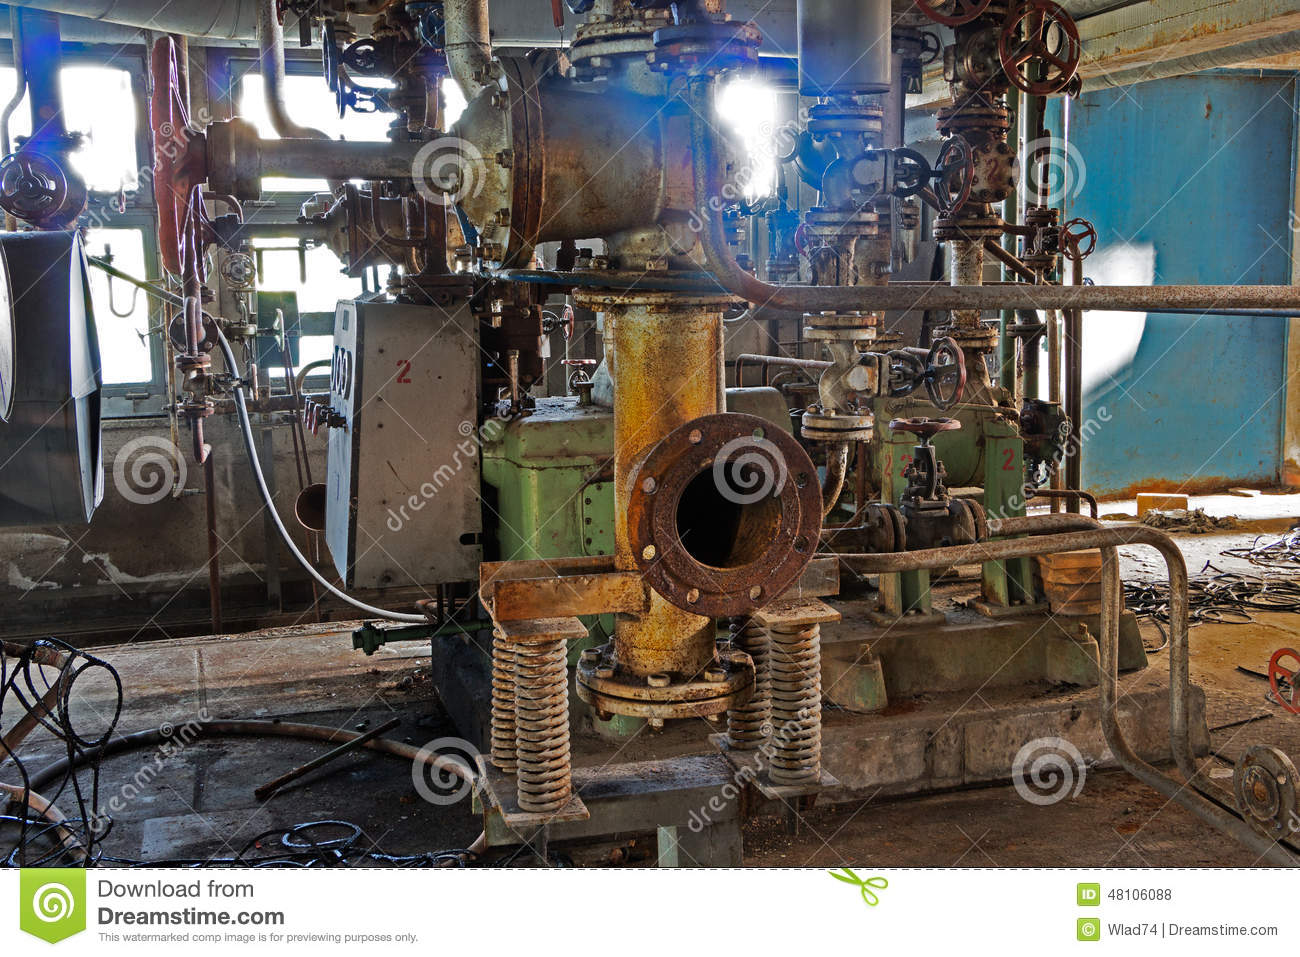 Vieilles machines d 39 usine abandonn e de l 39 int rieur photo for Interieur usine